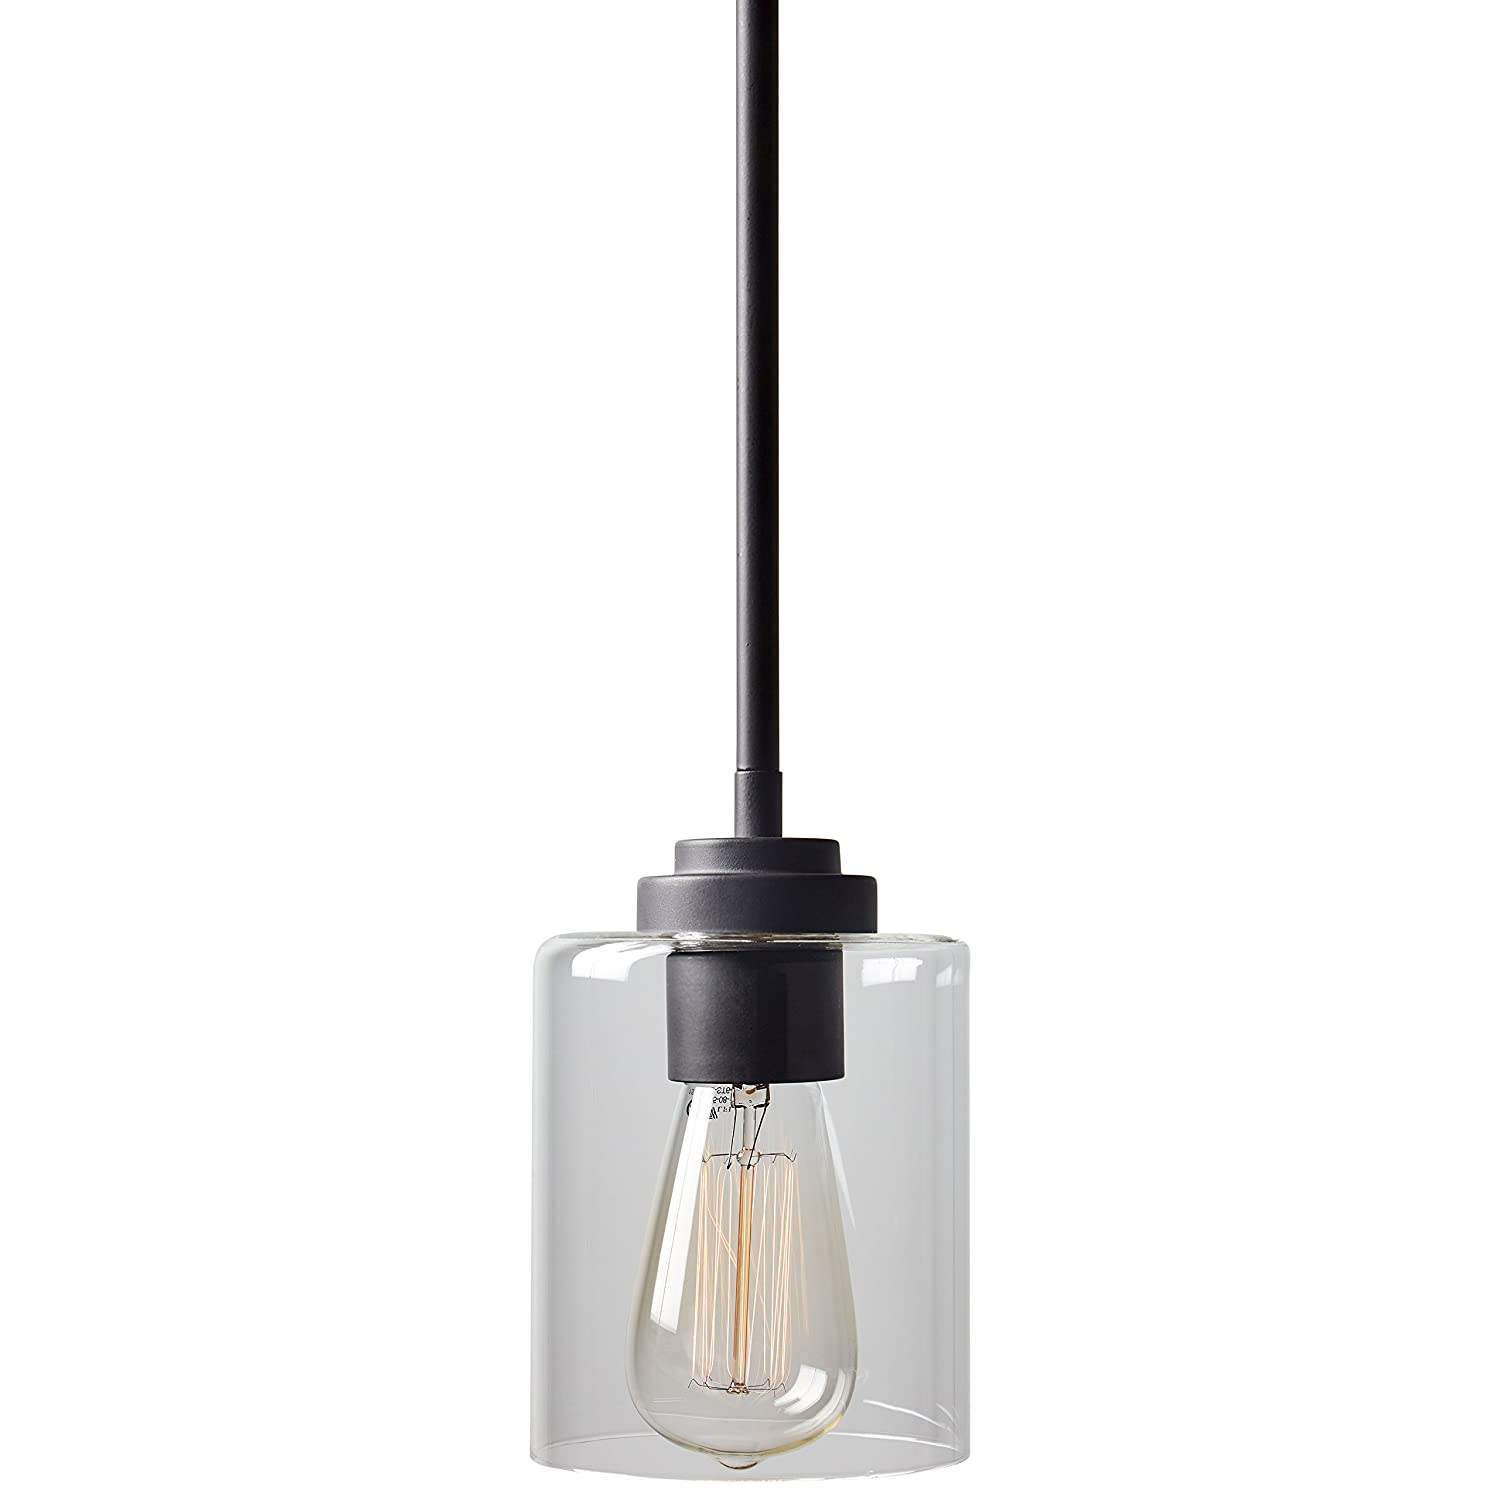 Stone beam modern farmhouse glass cylinder pendant light fixture with light bulb 4 75 inch shade 10 58 inch cord oil rubbed bronze